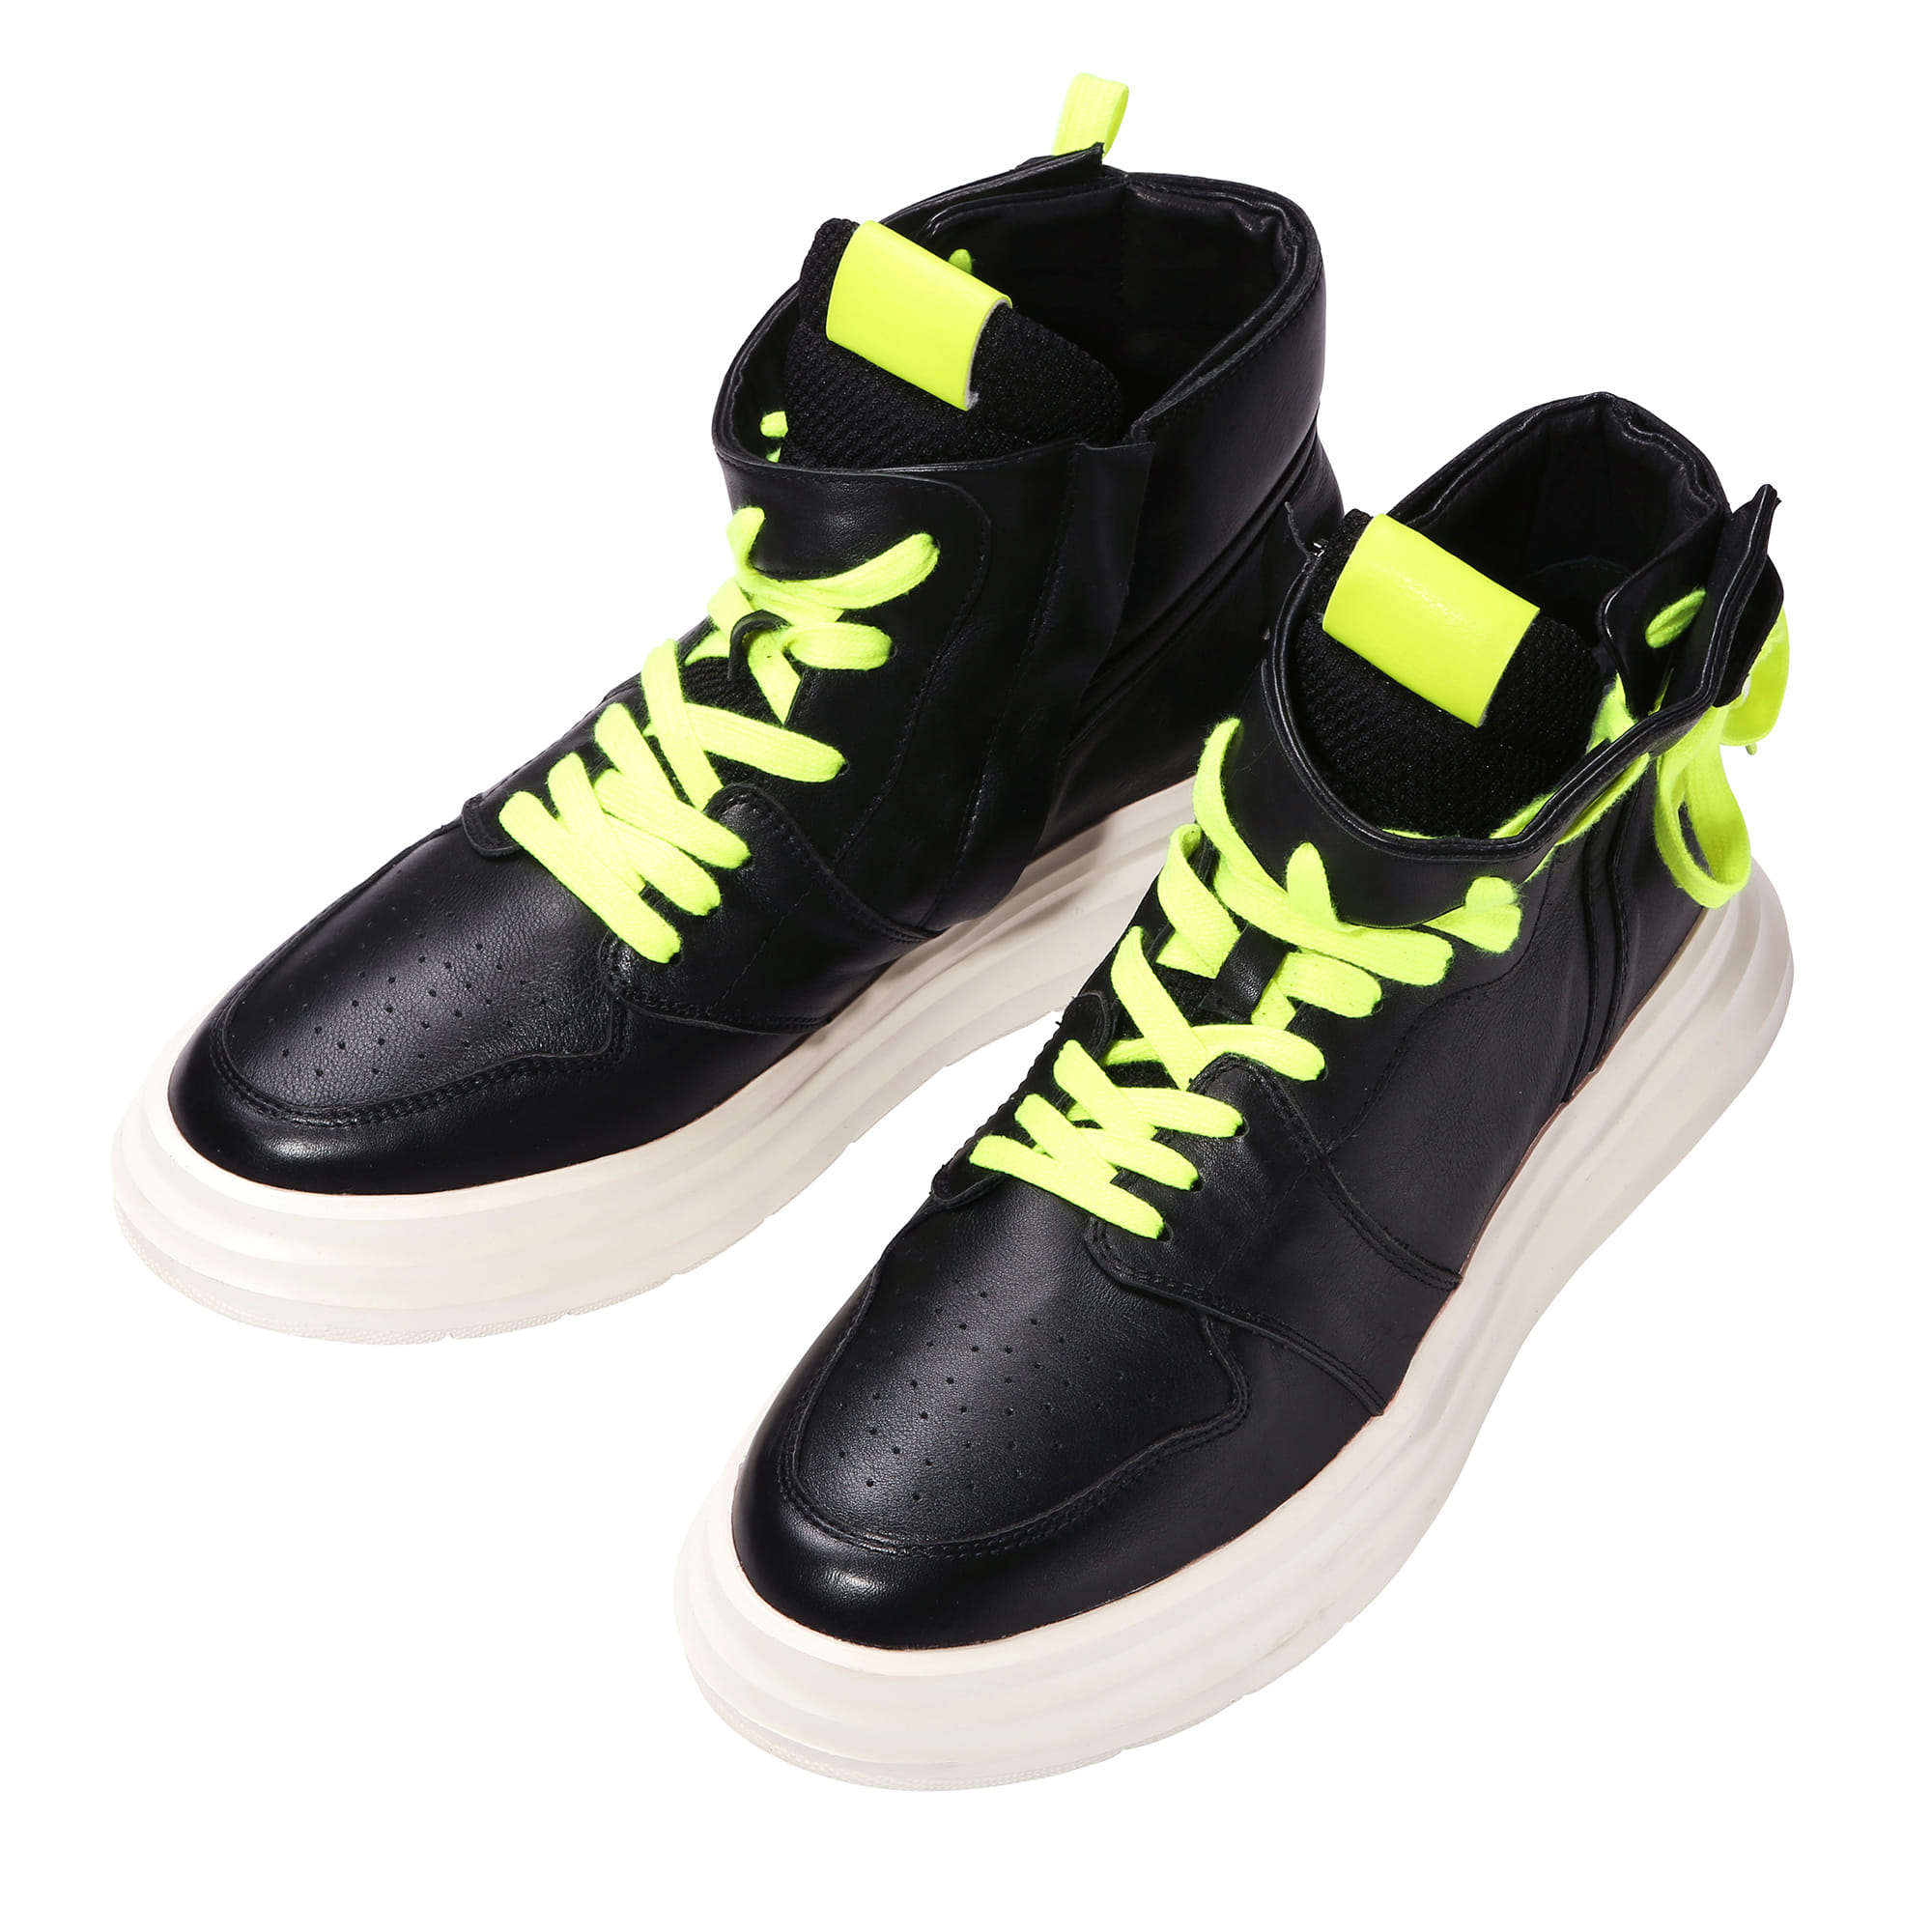 19FW MM High Top sneakers BK MYASH0504